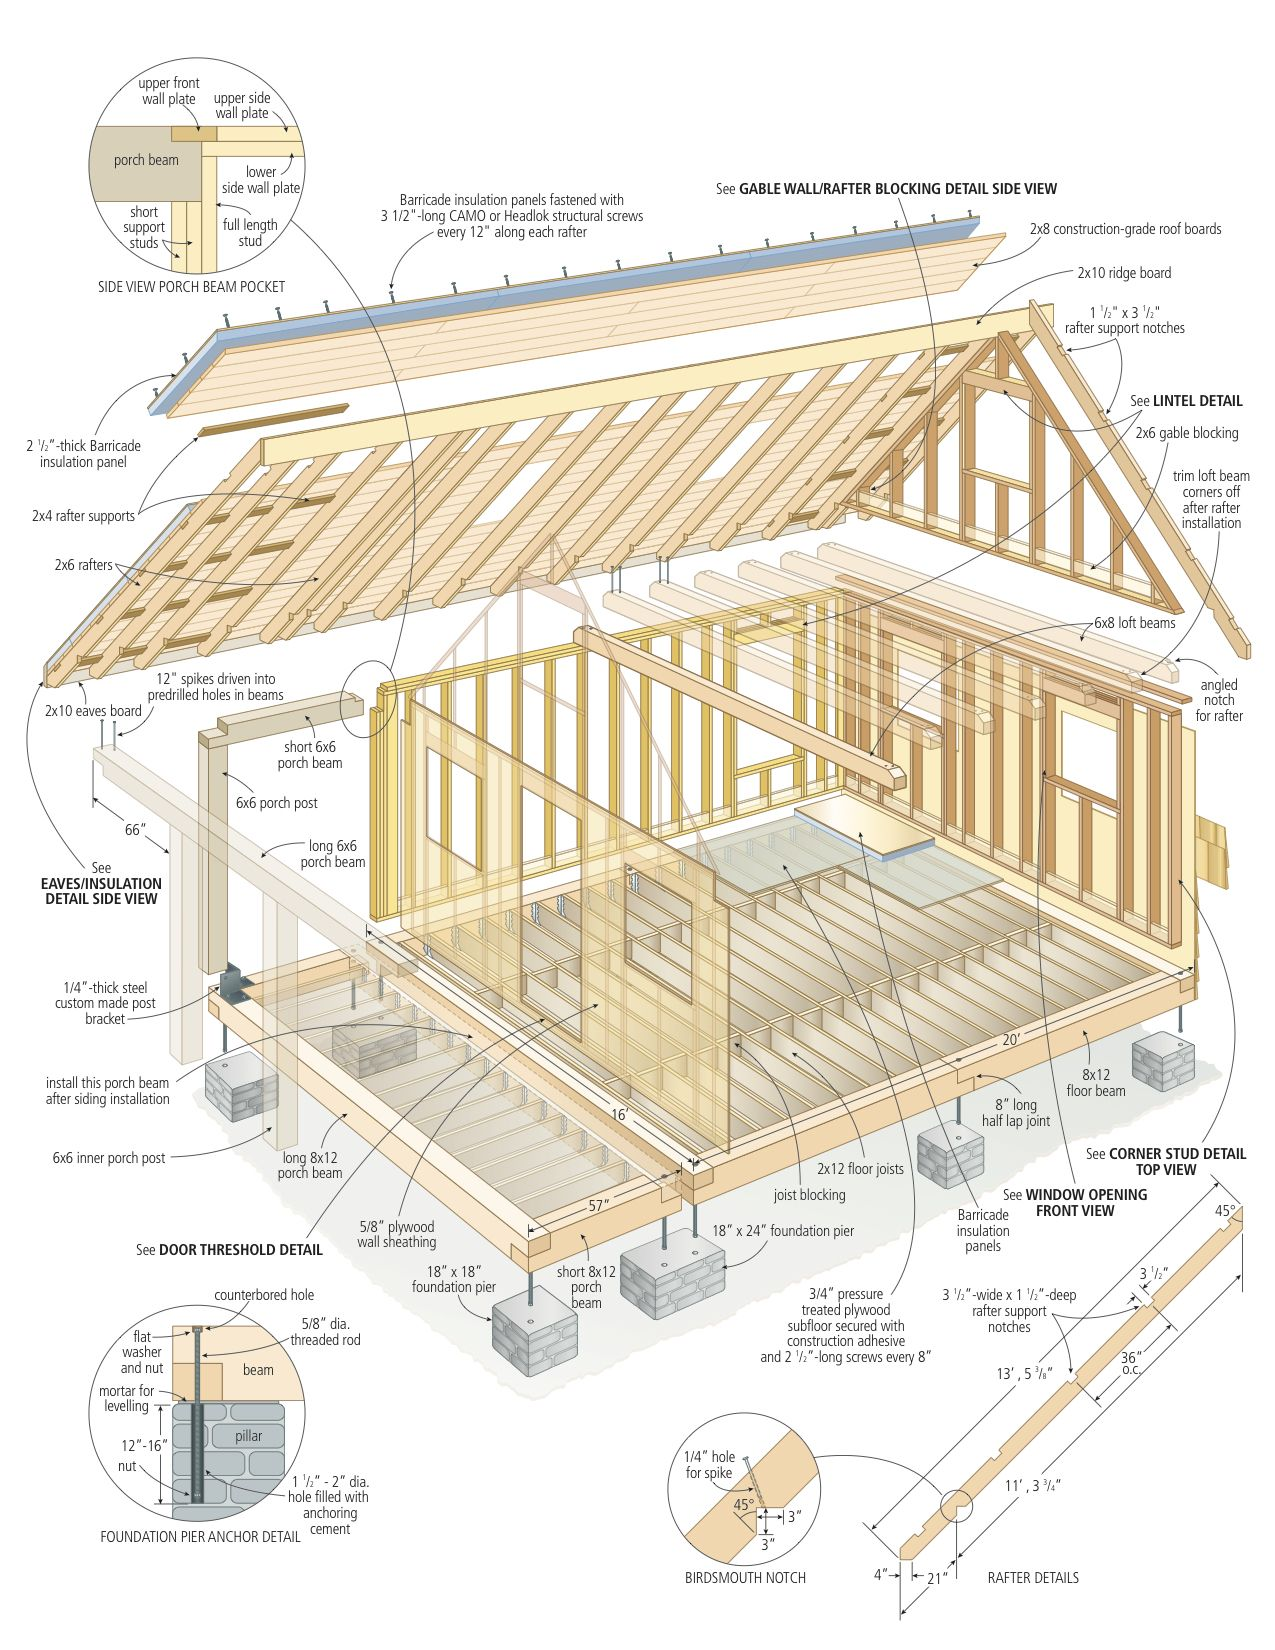 World S Most Complete Small Cabin Plans Video Construction Course Small Cabin Plans Building A Cabin Small Cabin